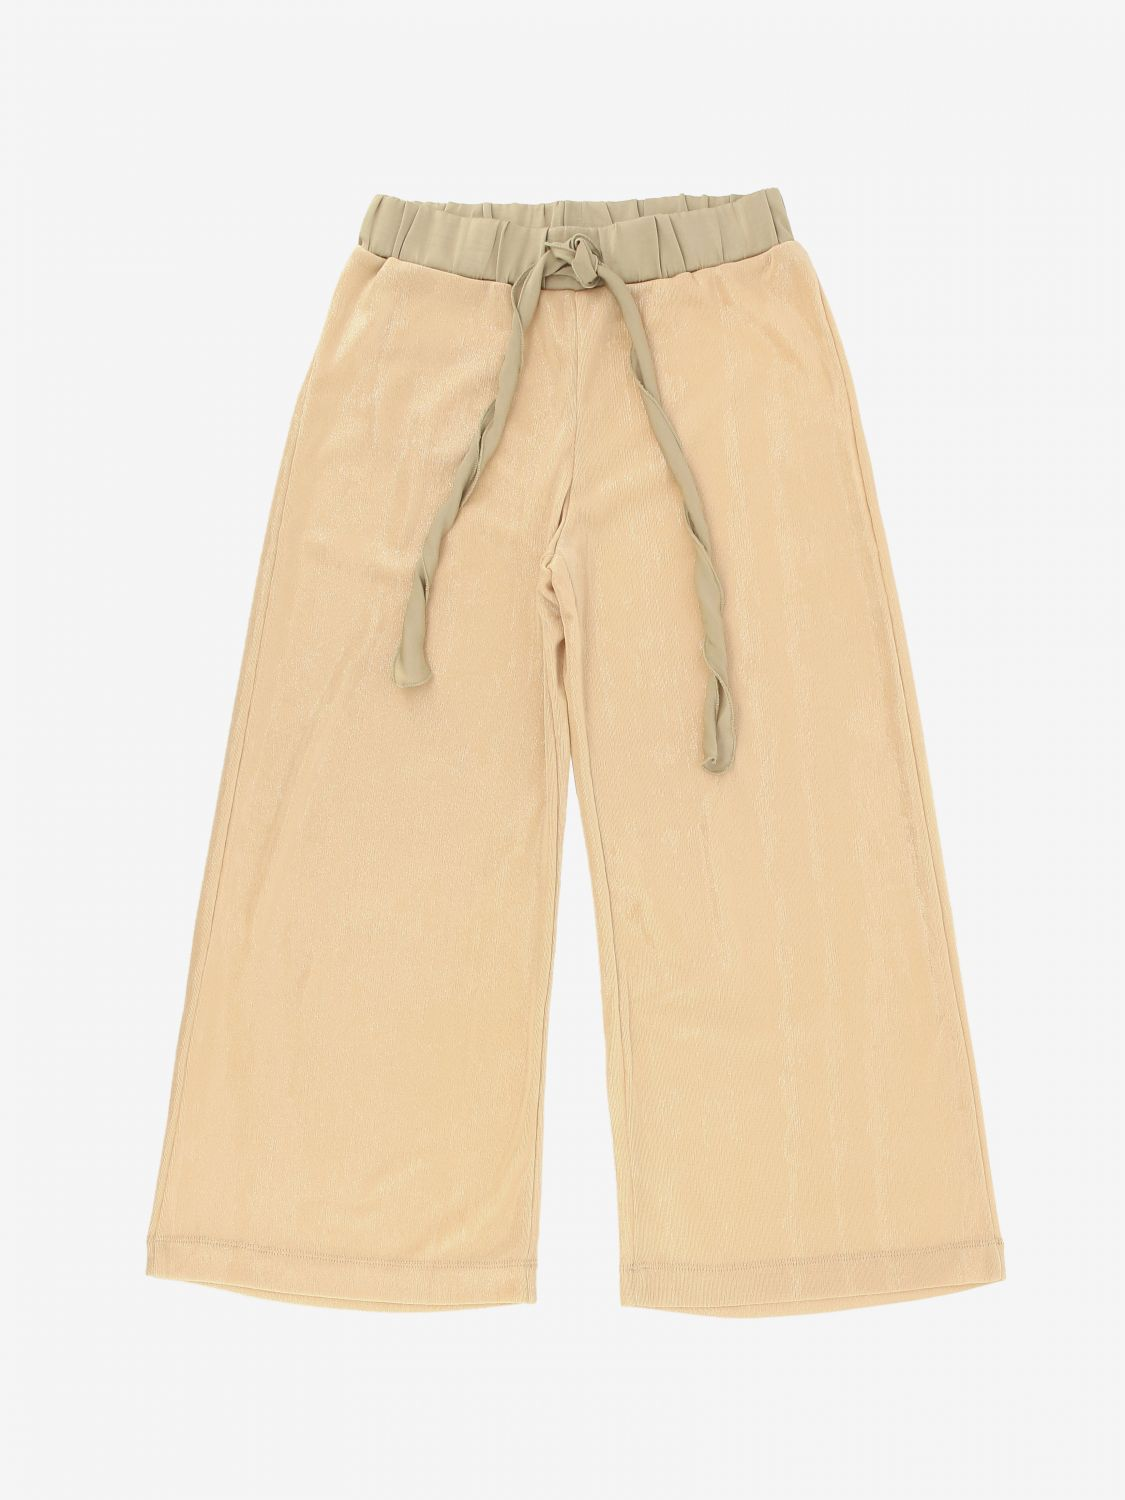 Pantalone Caffe' D'orzo: Pantalone Caffe' D'orzo con coulisse cipria 1